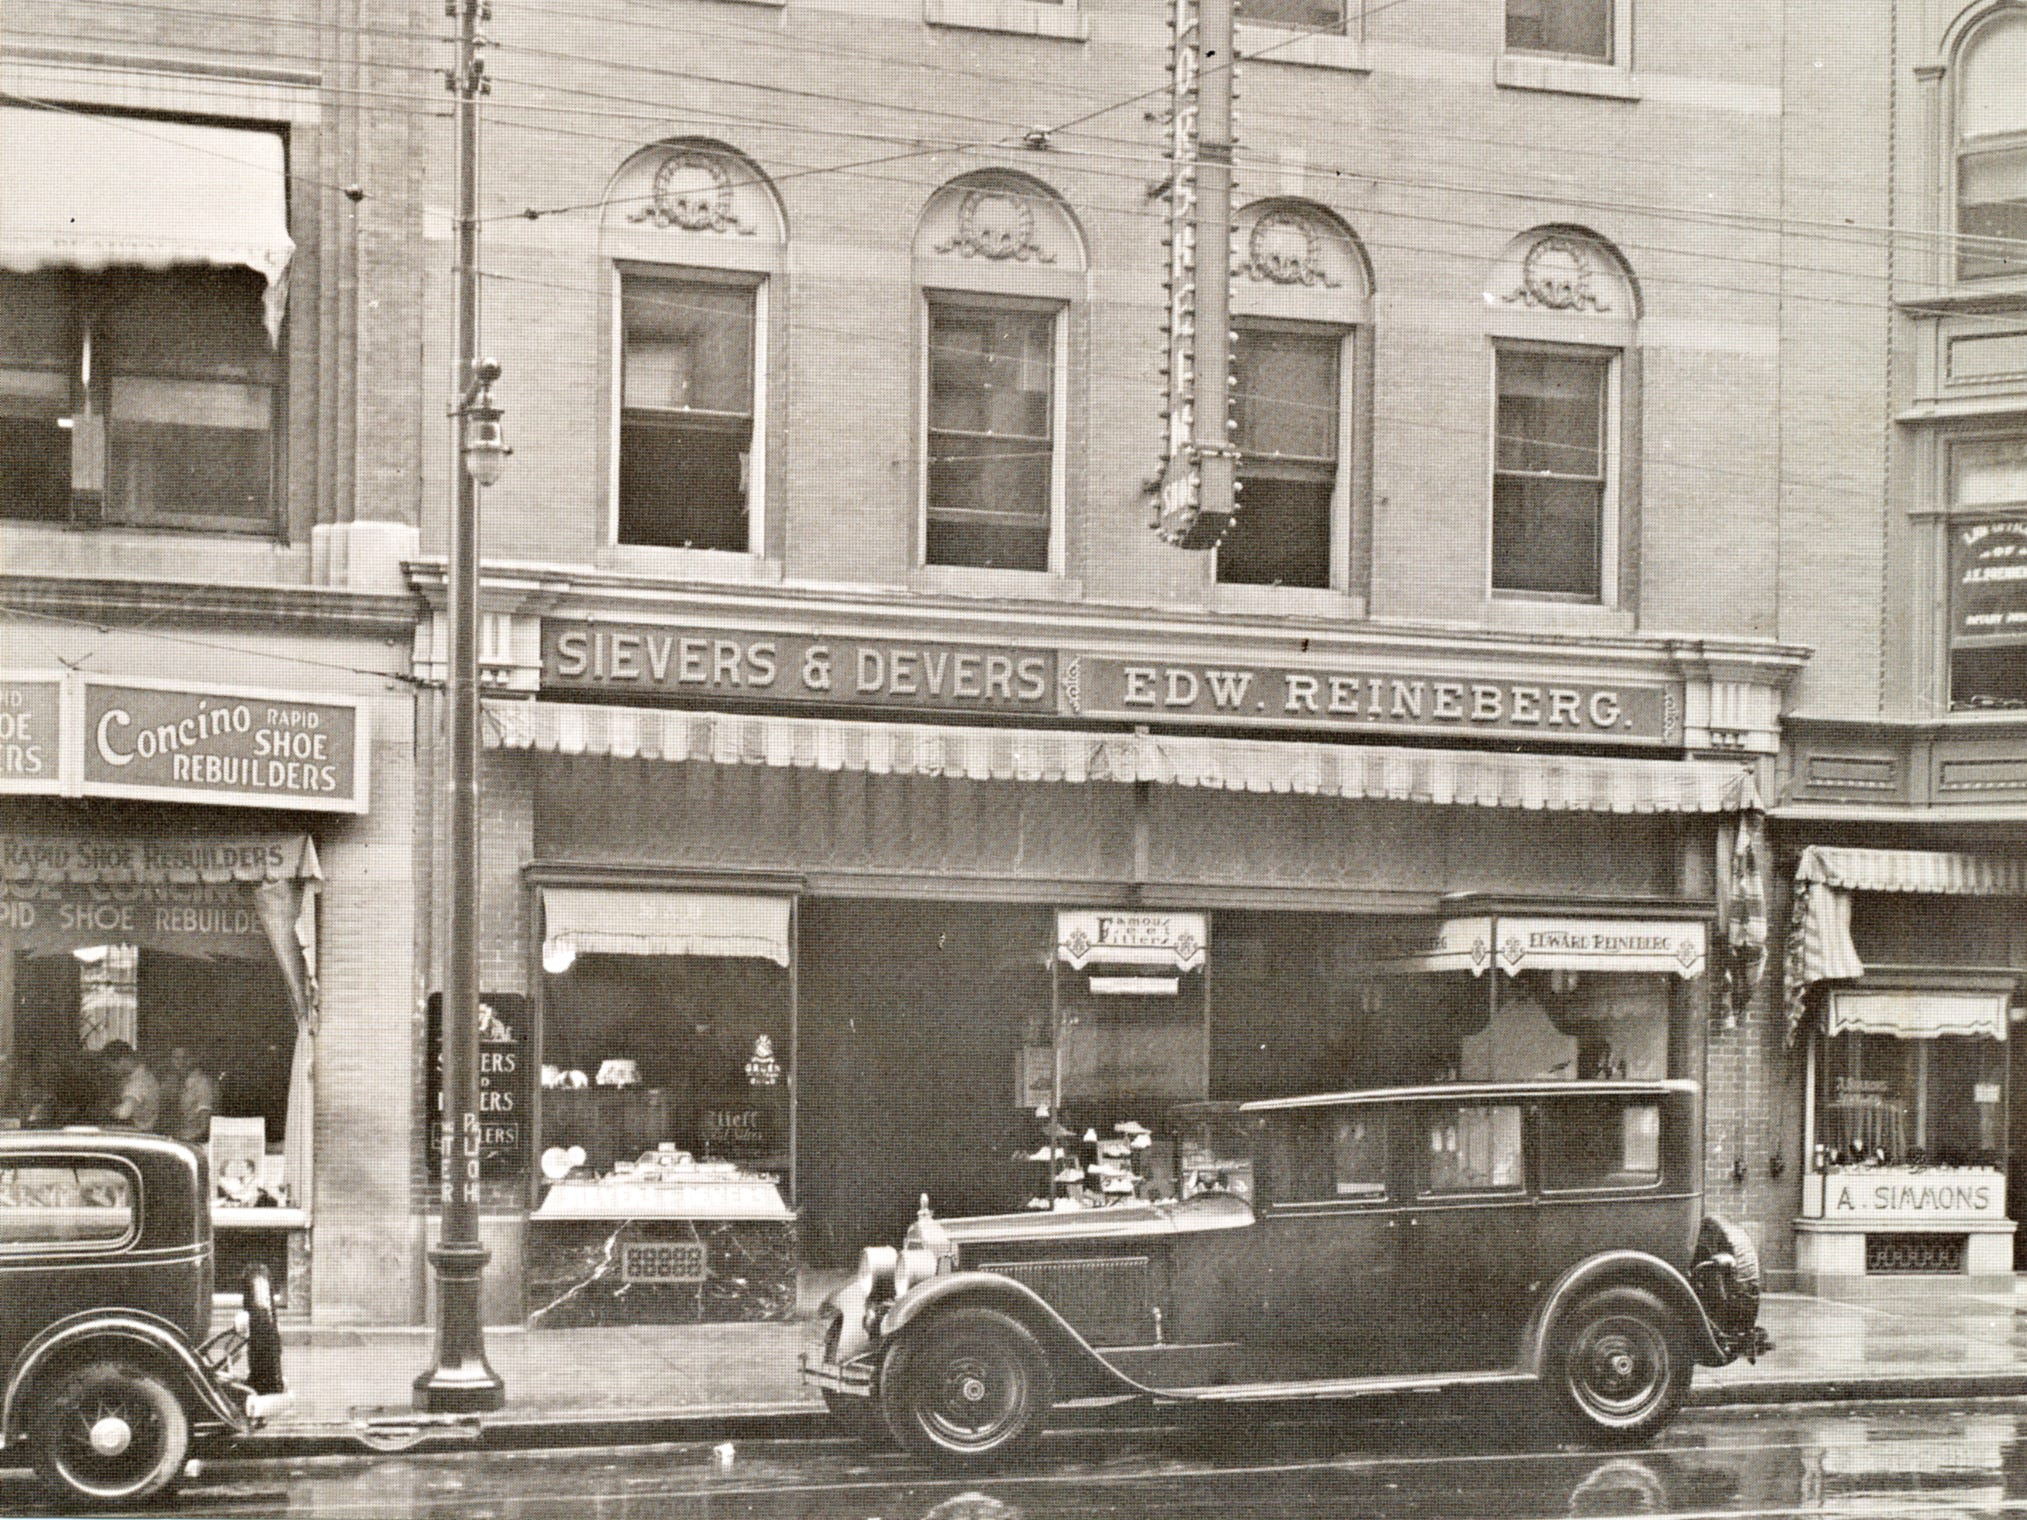 Reineberg's Shoe Store in 1925 from a postcard shared by Joyce Rode.